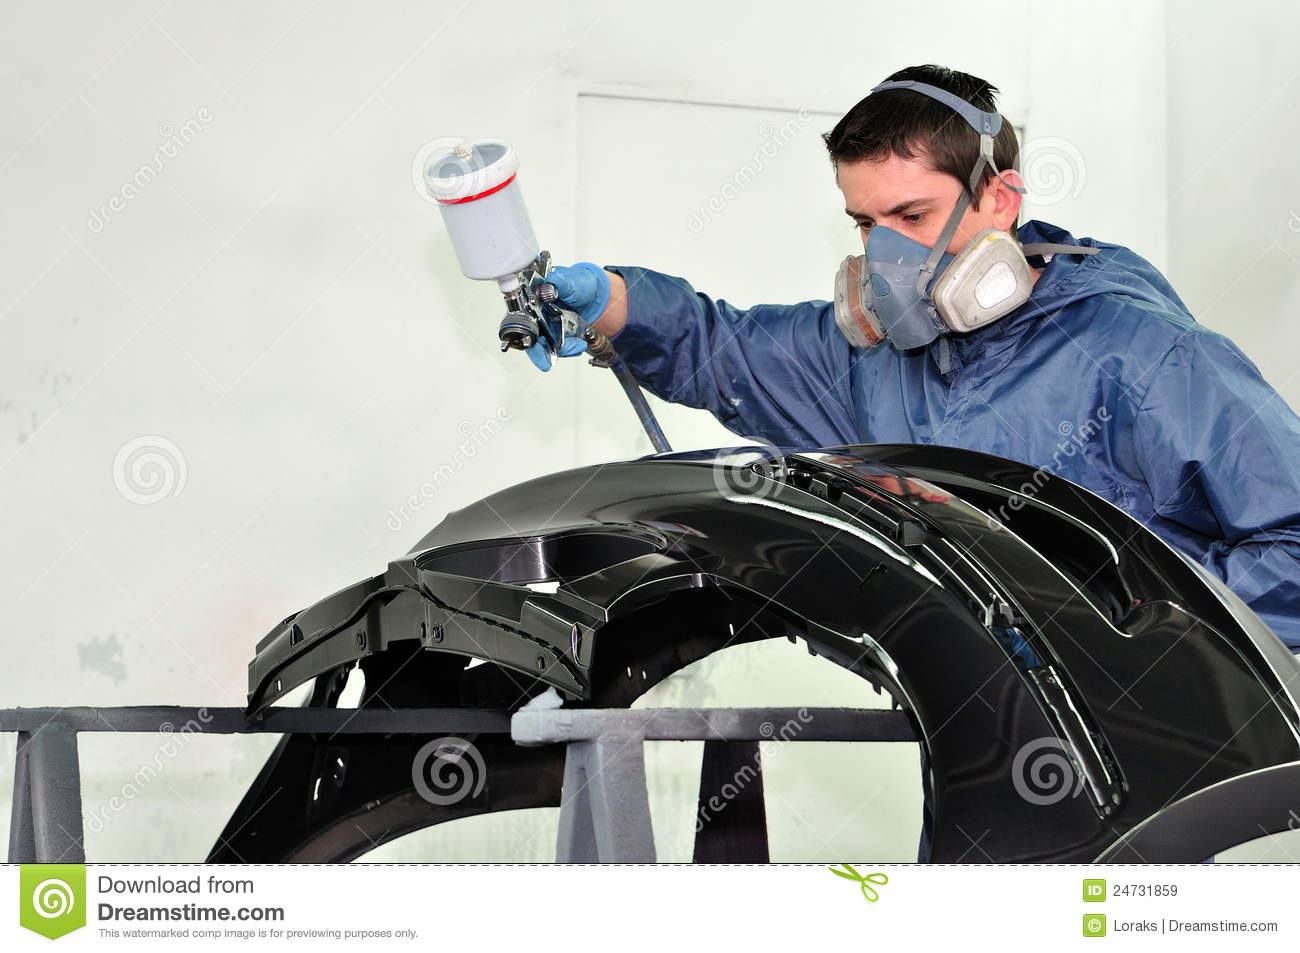 Worker painting a fender.